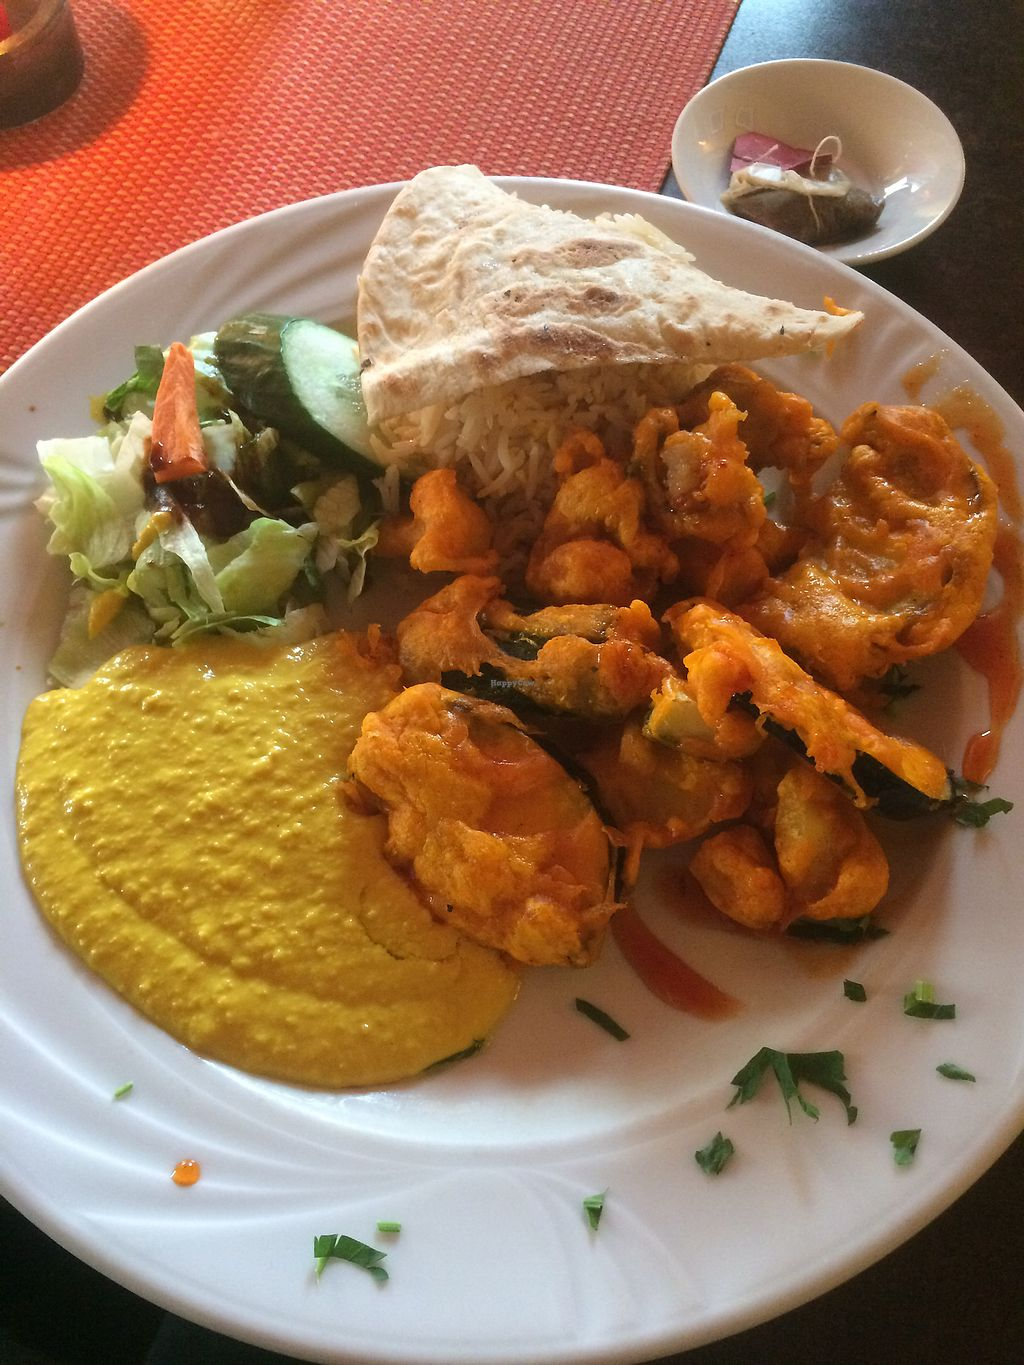 """Photo of Cafe Lom  by <a href=""""/members/profile/Adlerbaby"""">Adlerbaby</a> <br/>vegan Pakora with Humus, Rice and Bread  <br/> September 27, 2017  - <a href='/contact/abuse/image/82094/309090'>Report</a>"""